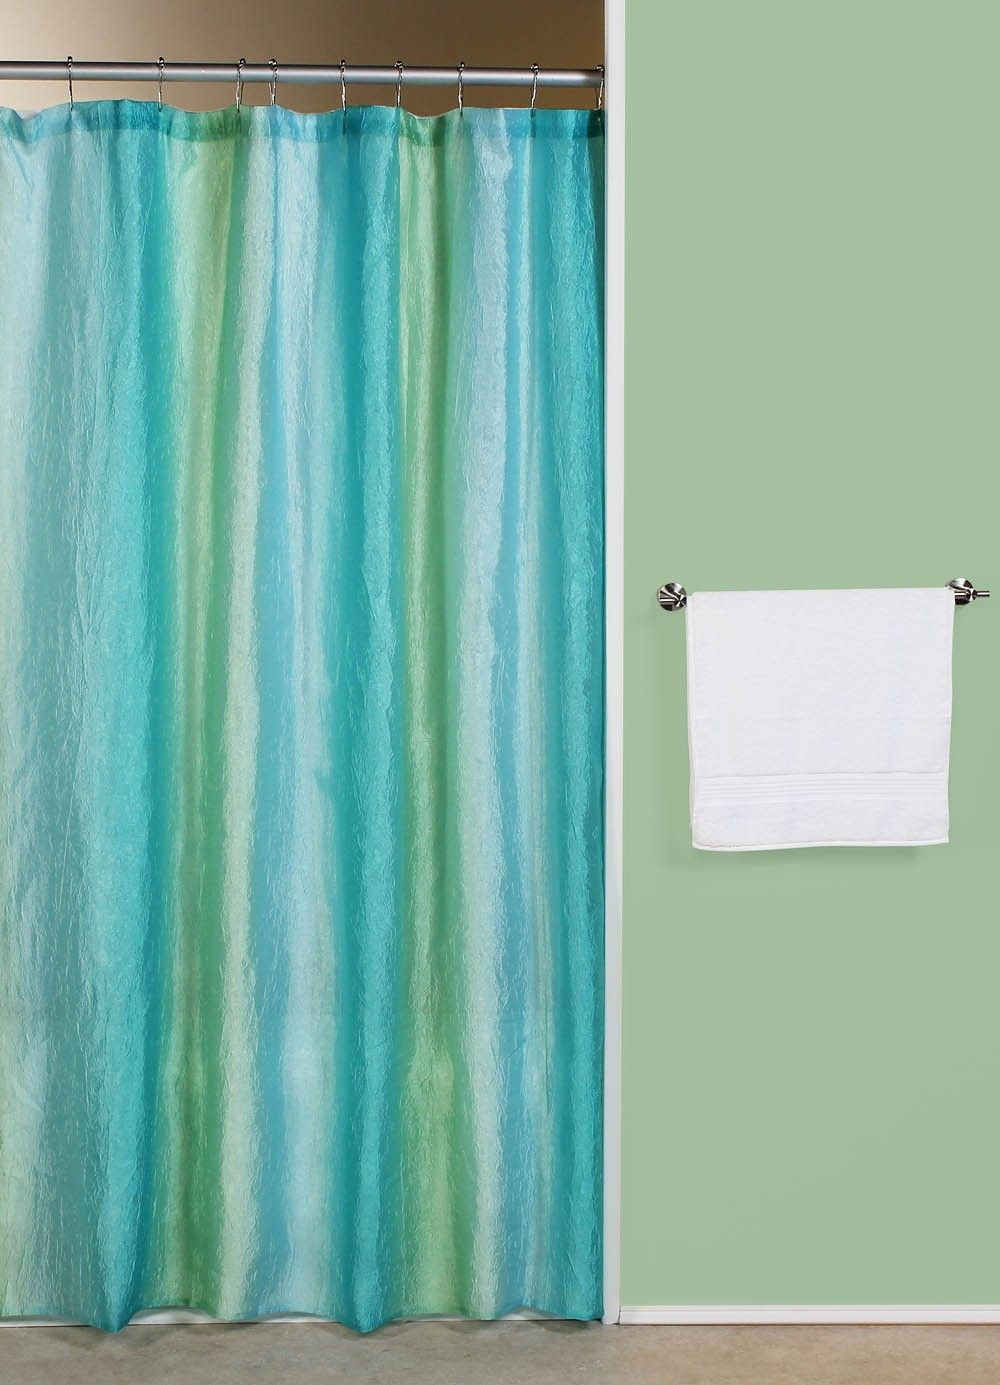 Curtain Bath Outlet Ombre Blue Green Fabric Shower Curtain Kids Bathroom Ideas Pinterest